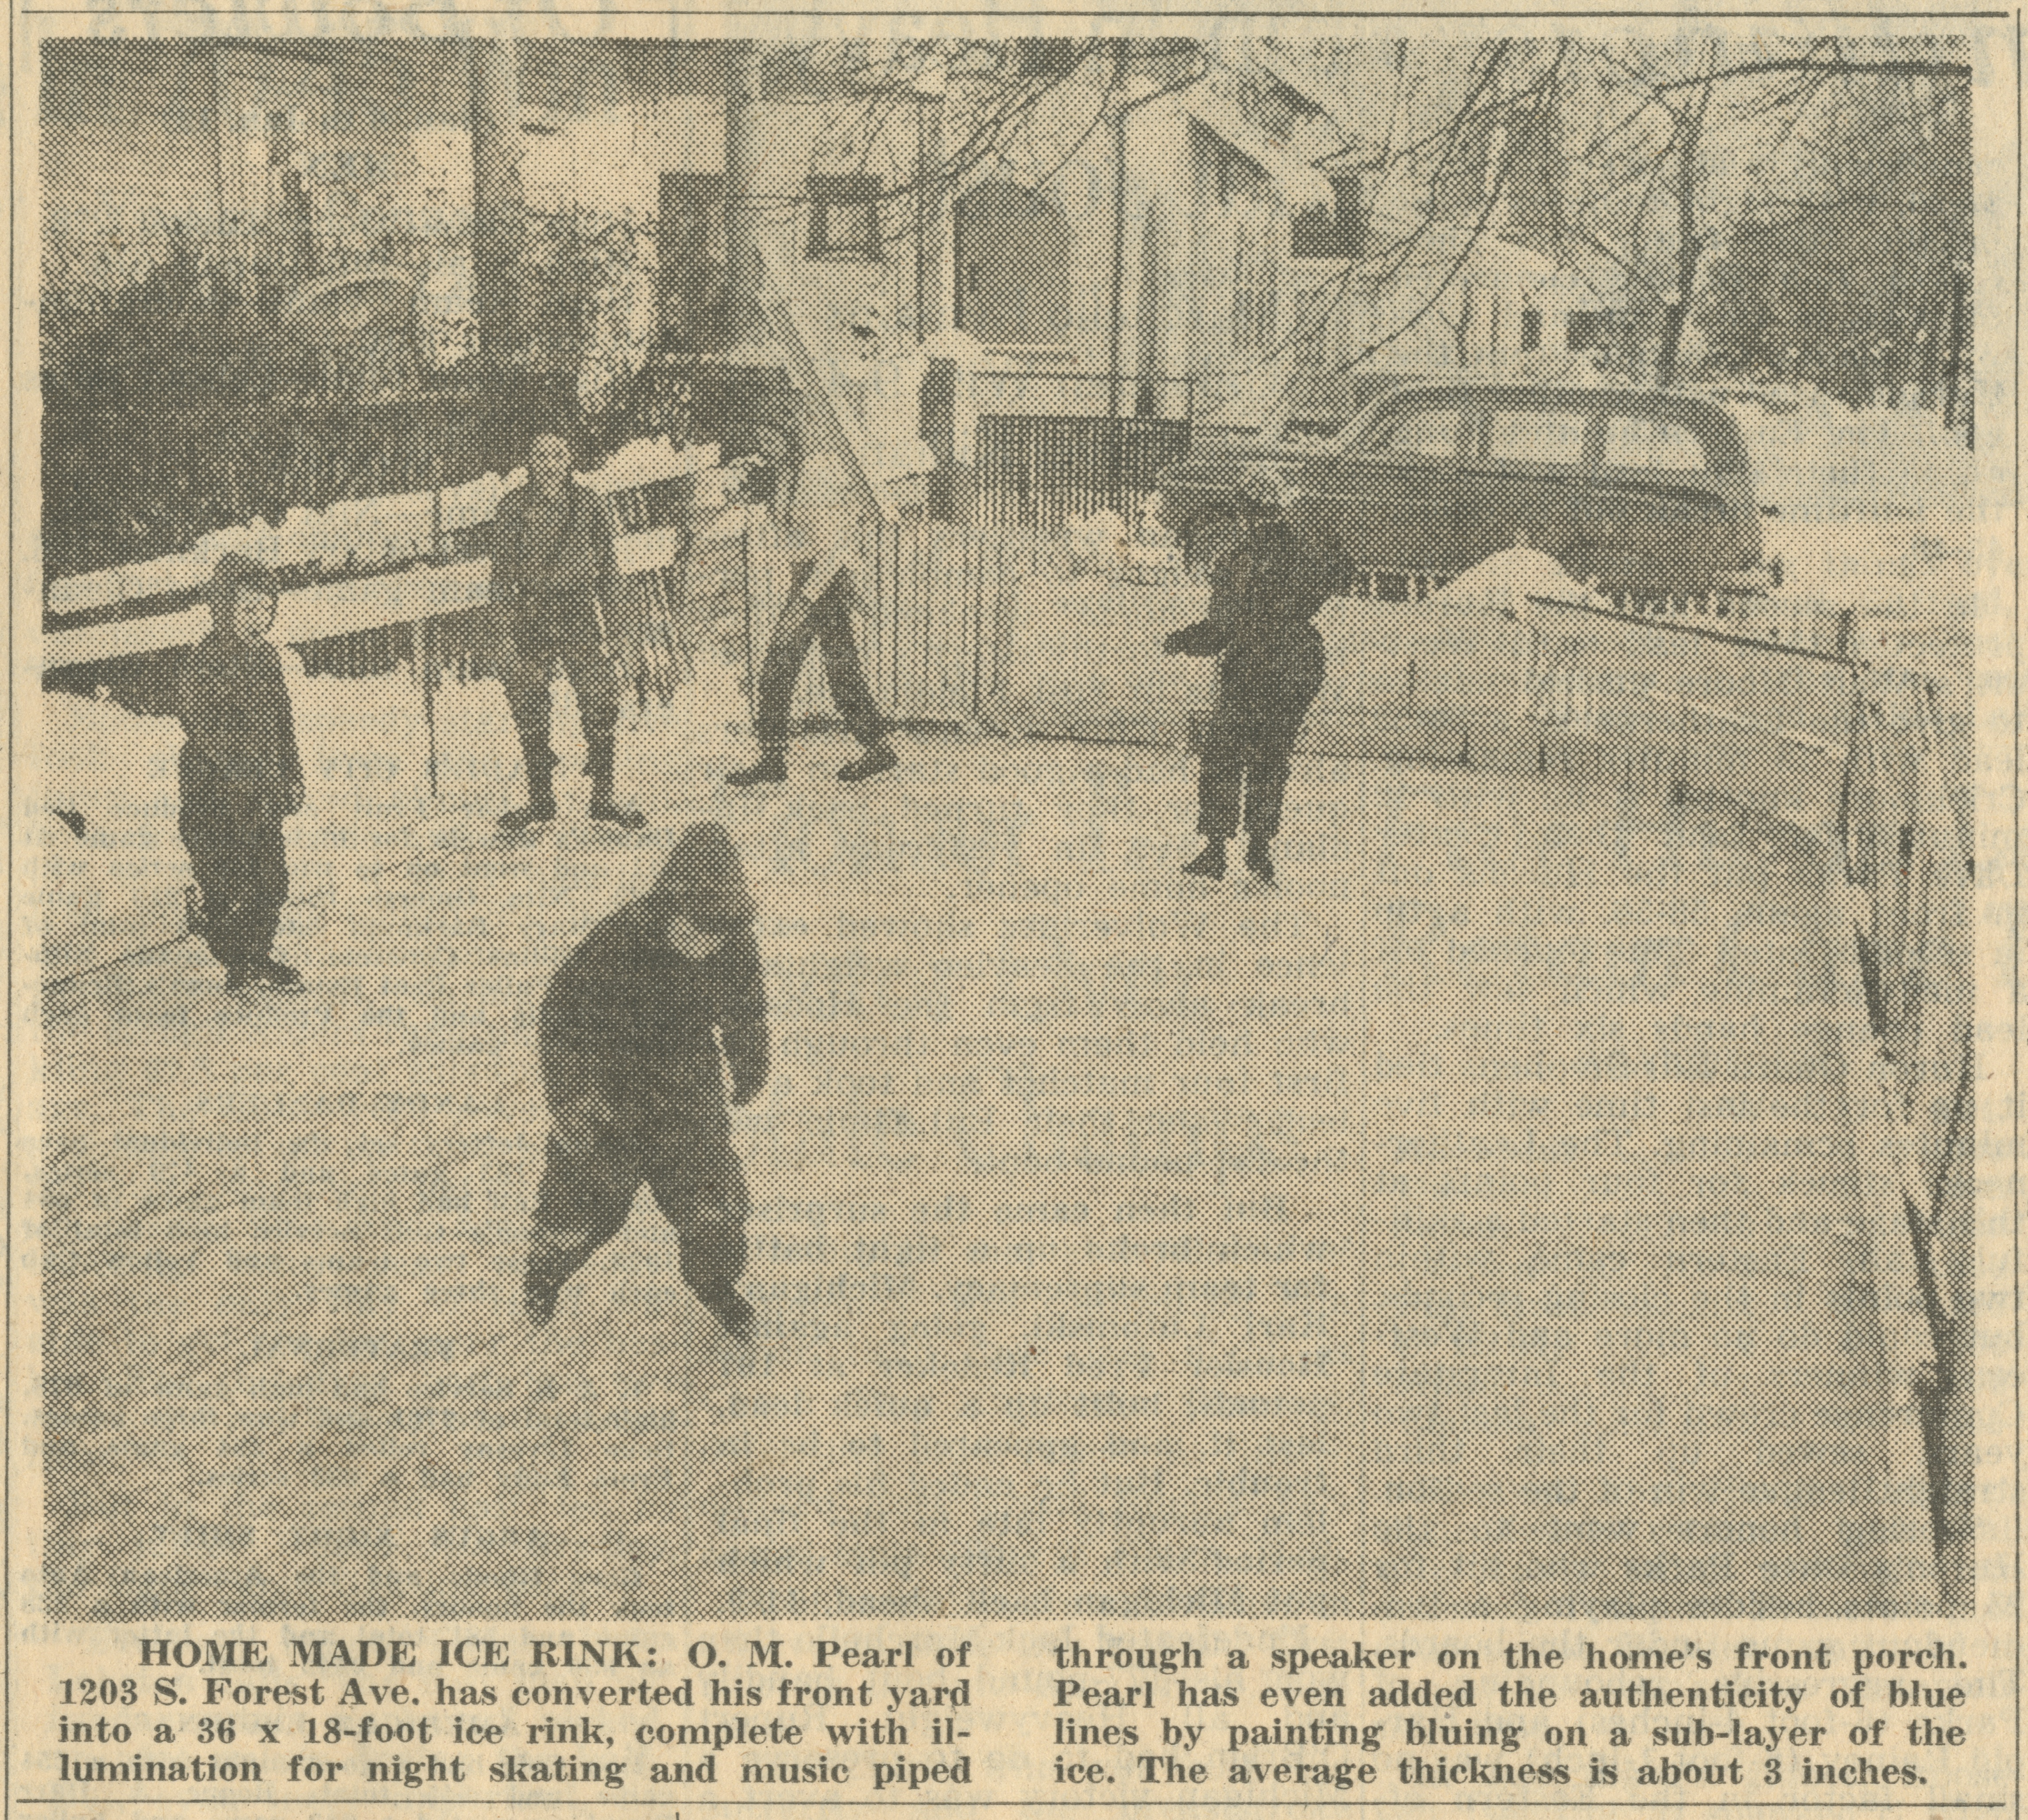 Home Made Ice Rink image